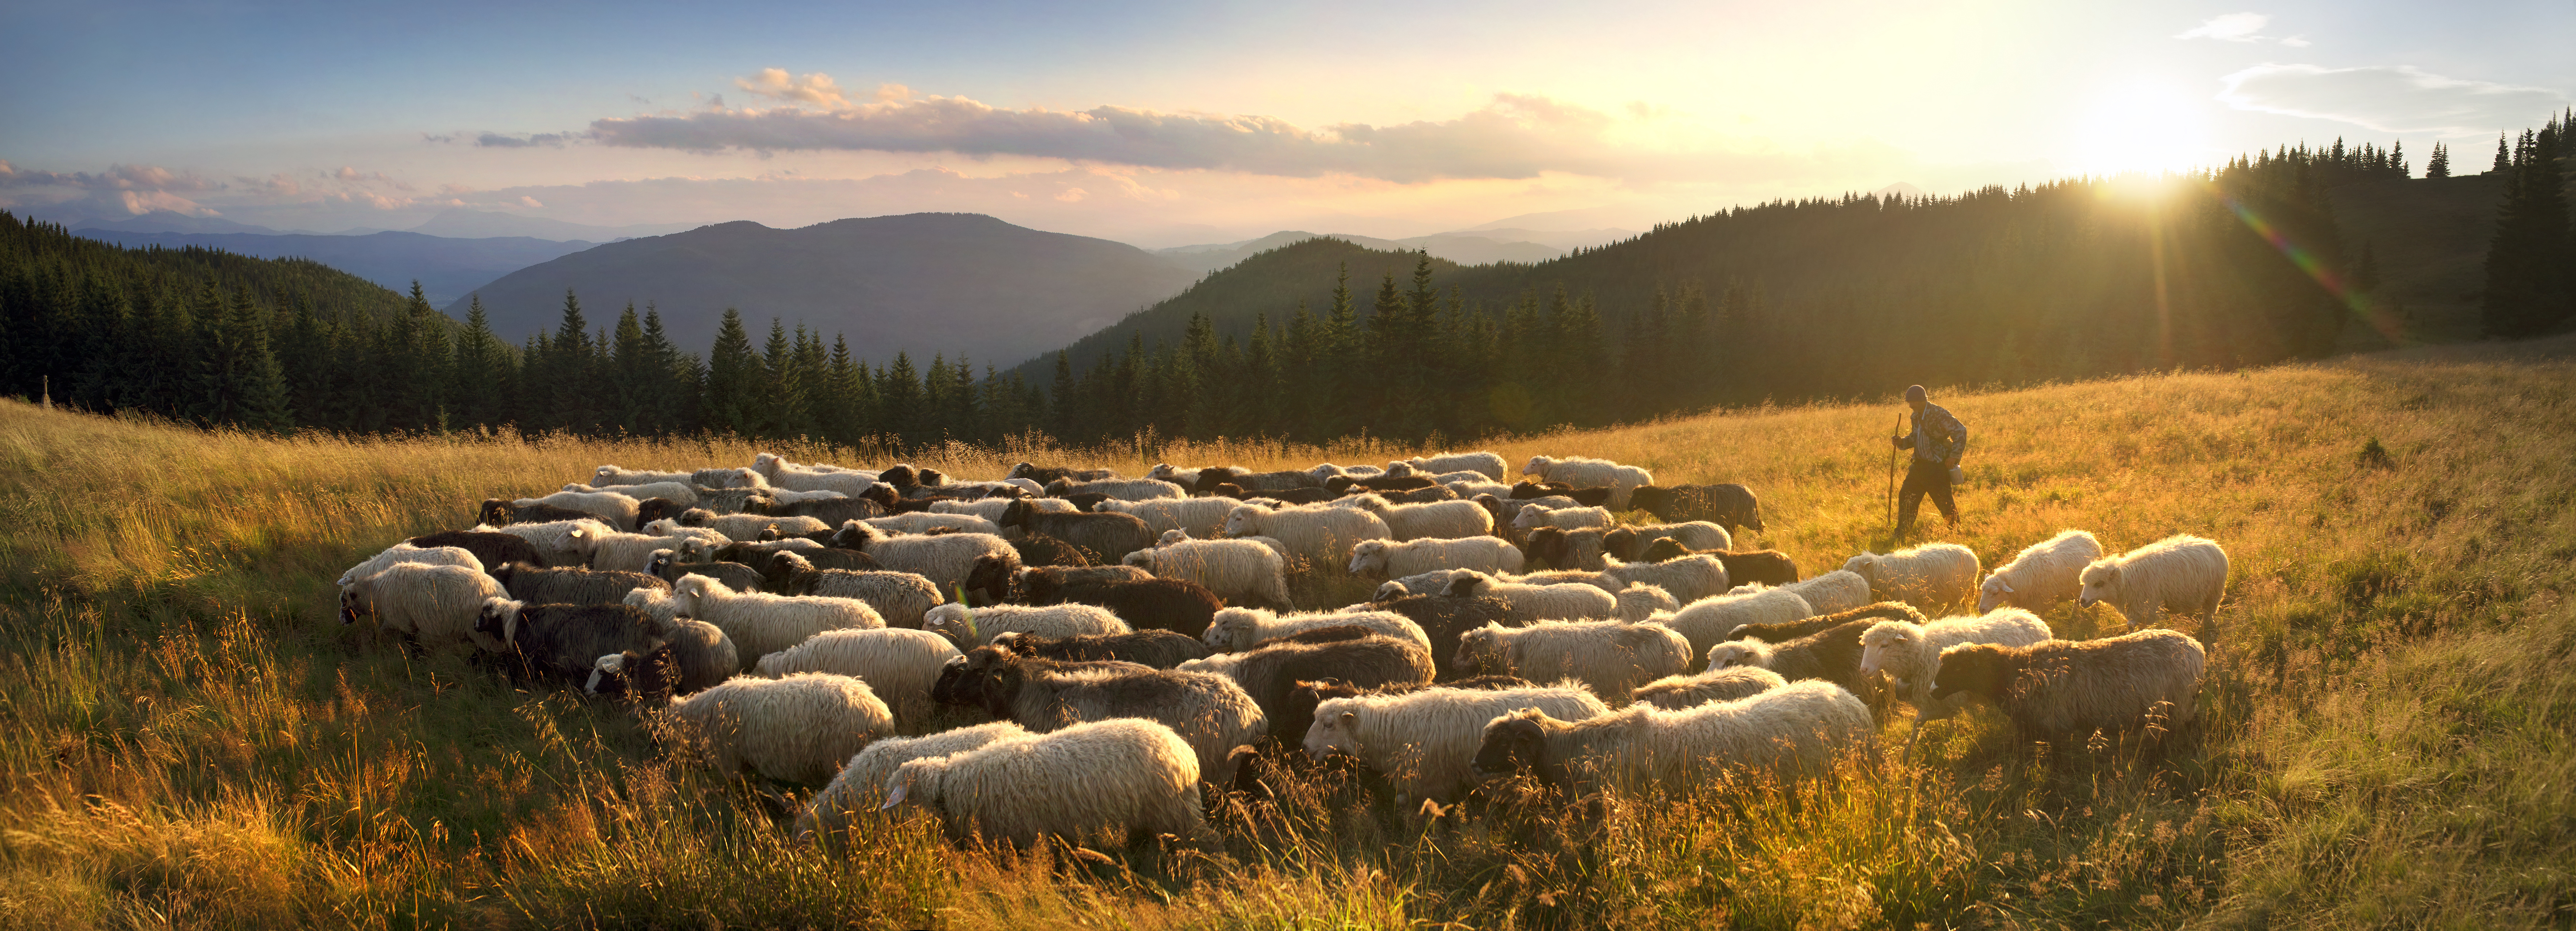 Ukraine, Vorohta- July 28, 2015: High in the mountains at sunset shepherds graze cattle among the panorama of wild forests and fields of the Carpathians. Sheep provide wool, milk and meat for agriculture